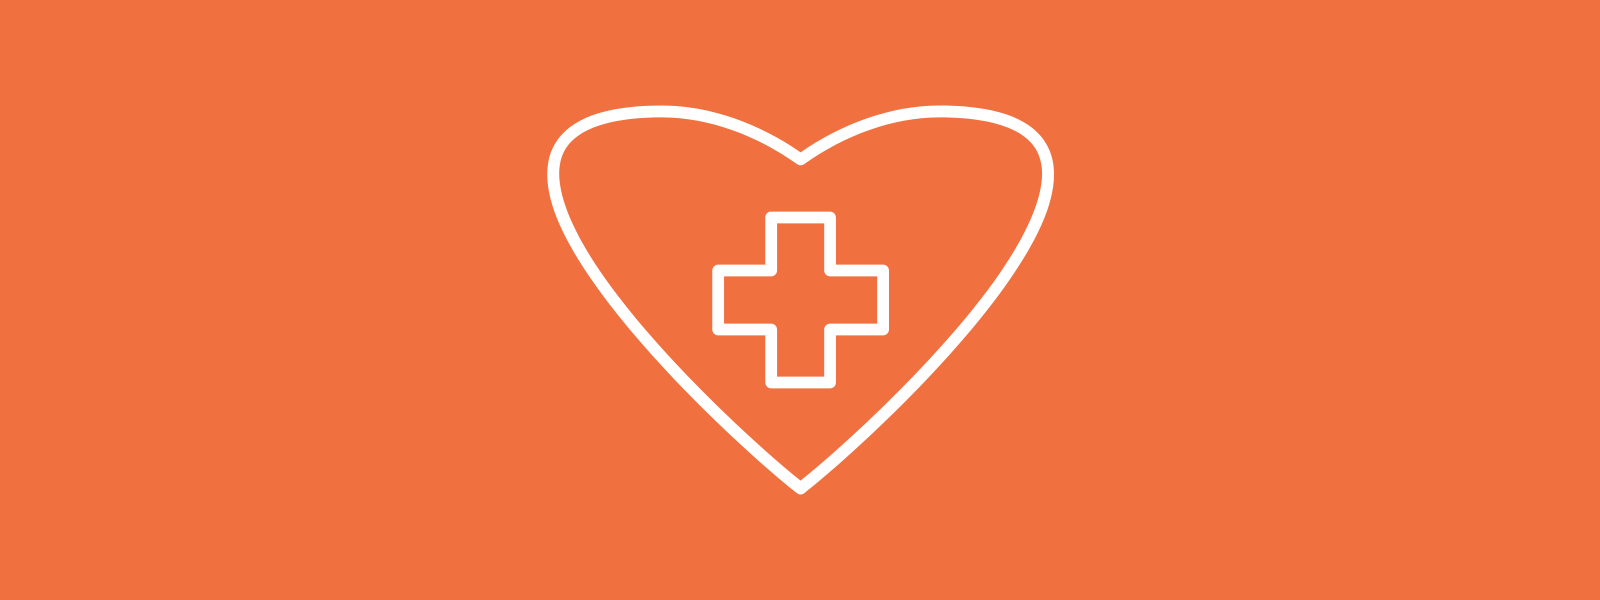 Icon background of a heart with plus inside